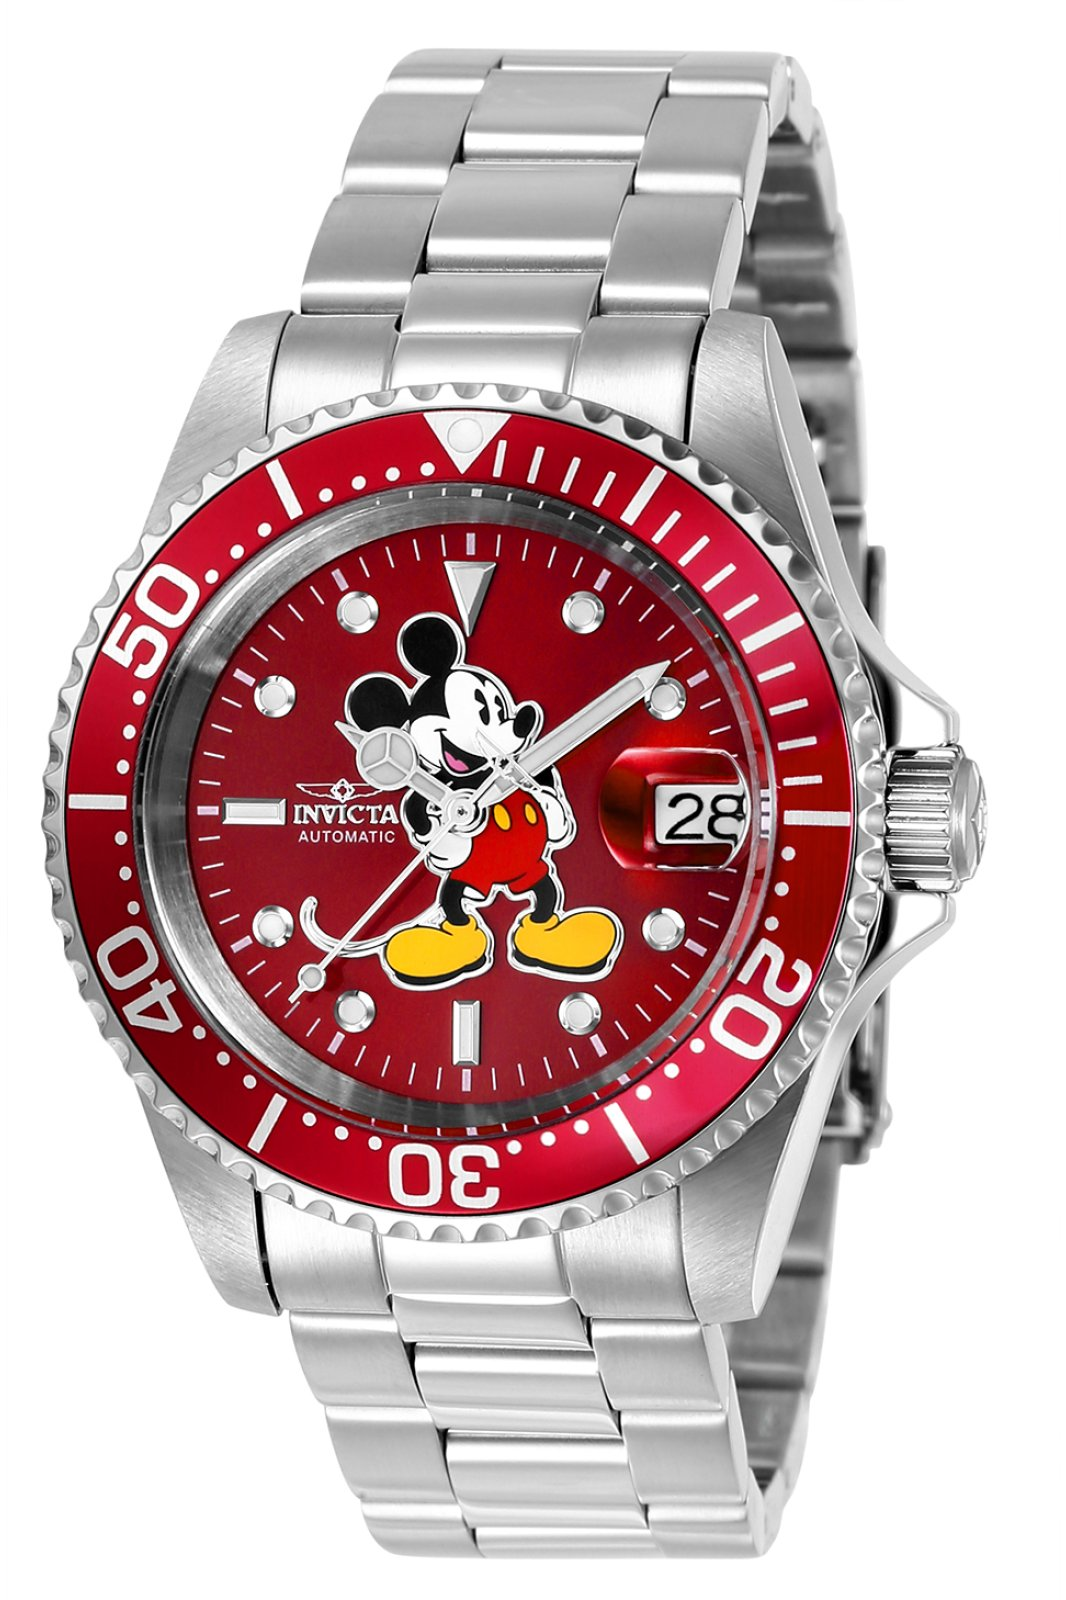 Invicta Disney - Mickey Mouse 24609 Relógio  Automatico  - 40mm